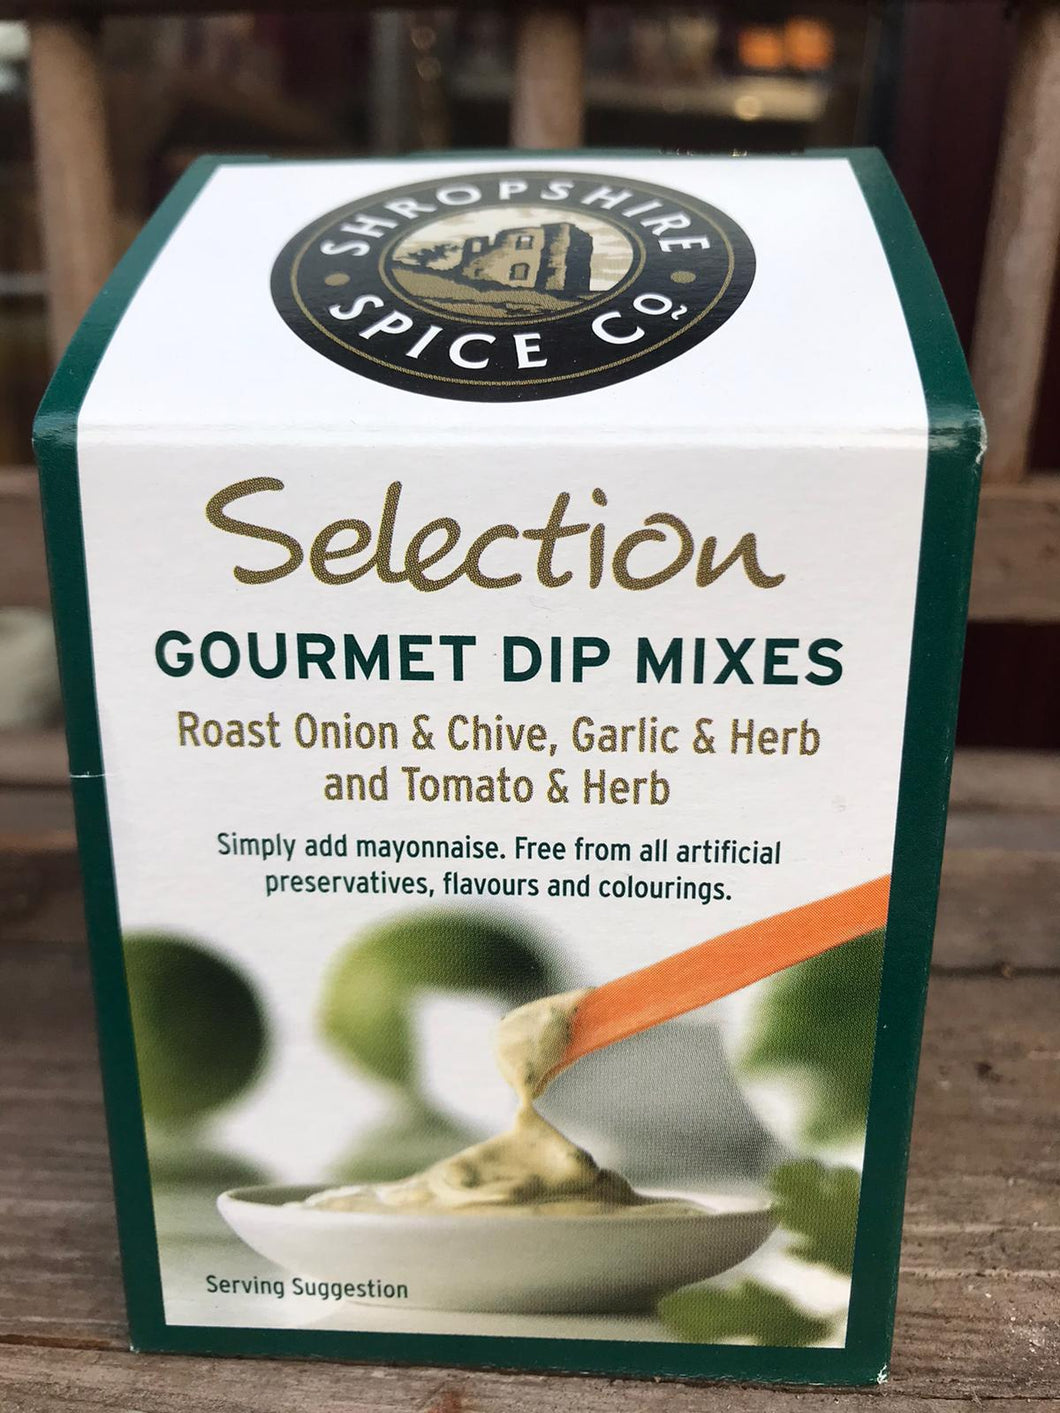 Christmas Food -Shropshire Spice Co - Selection Gourmet Dip Mixes